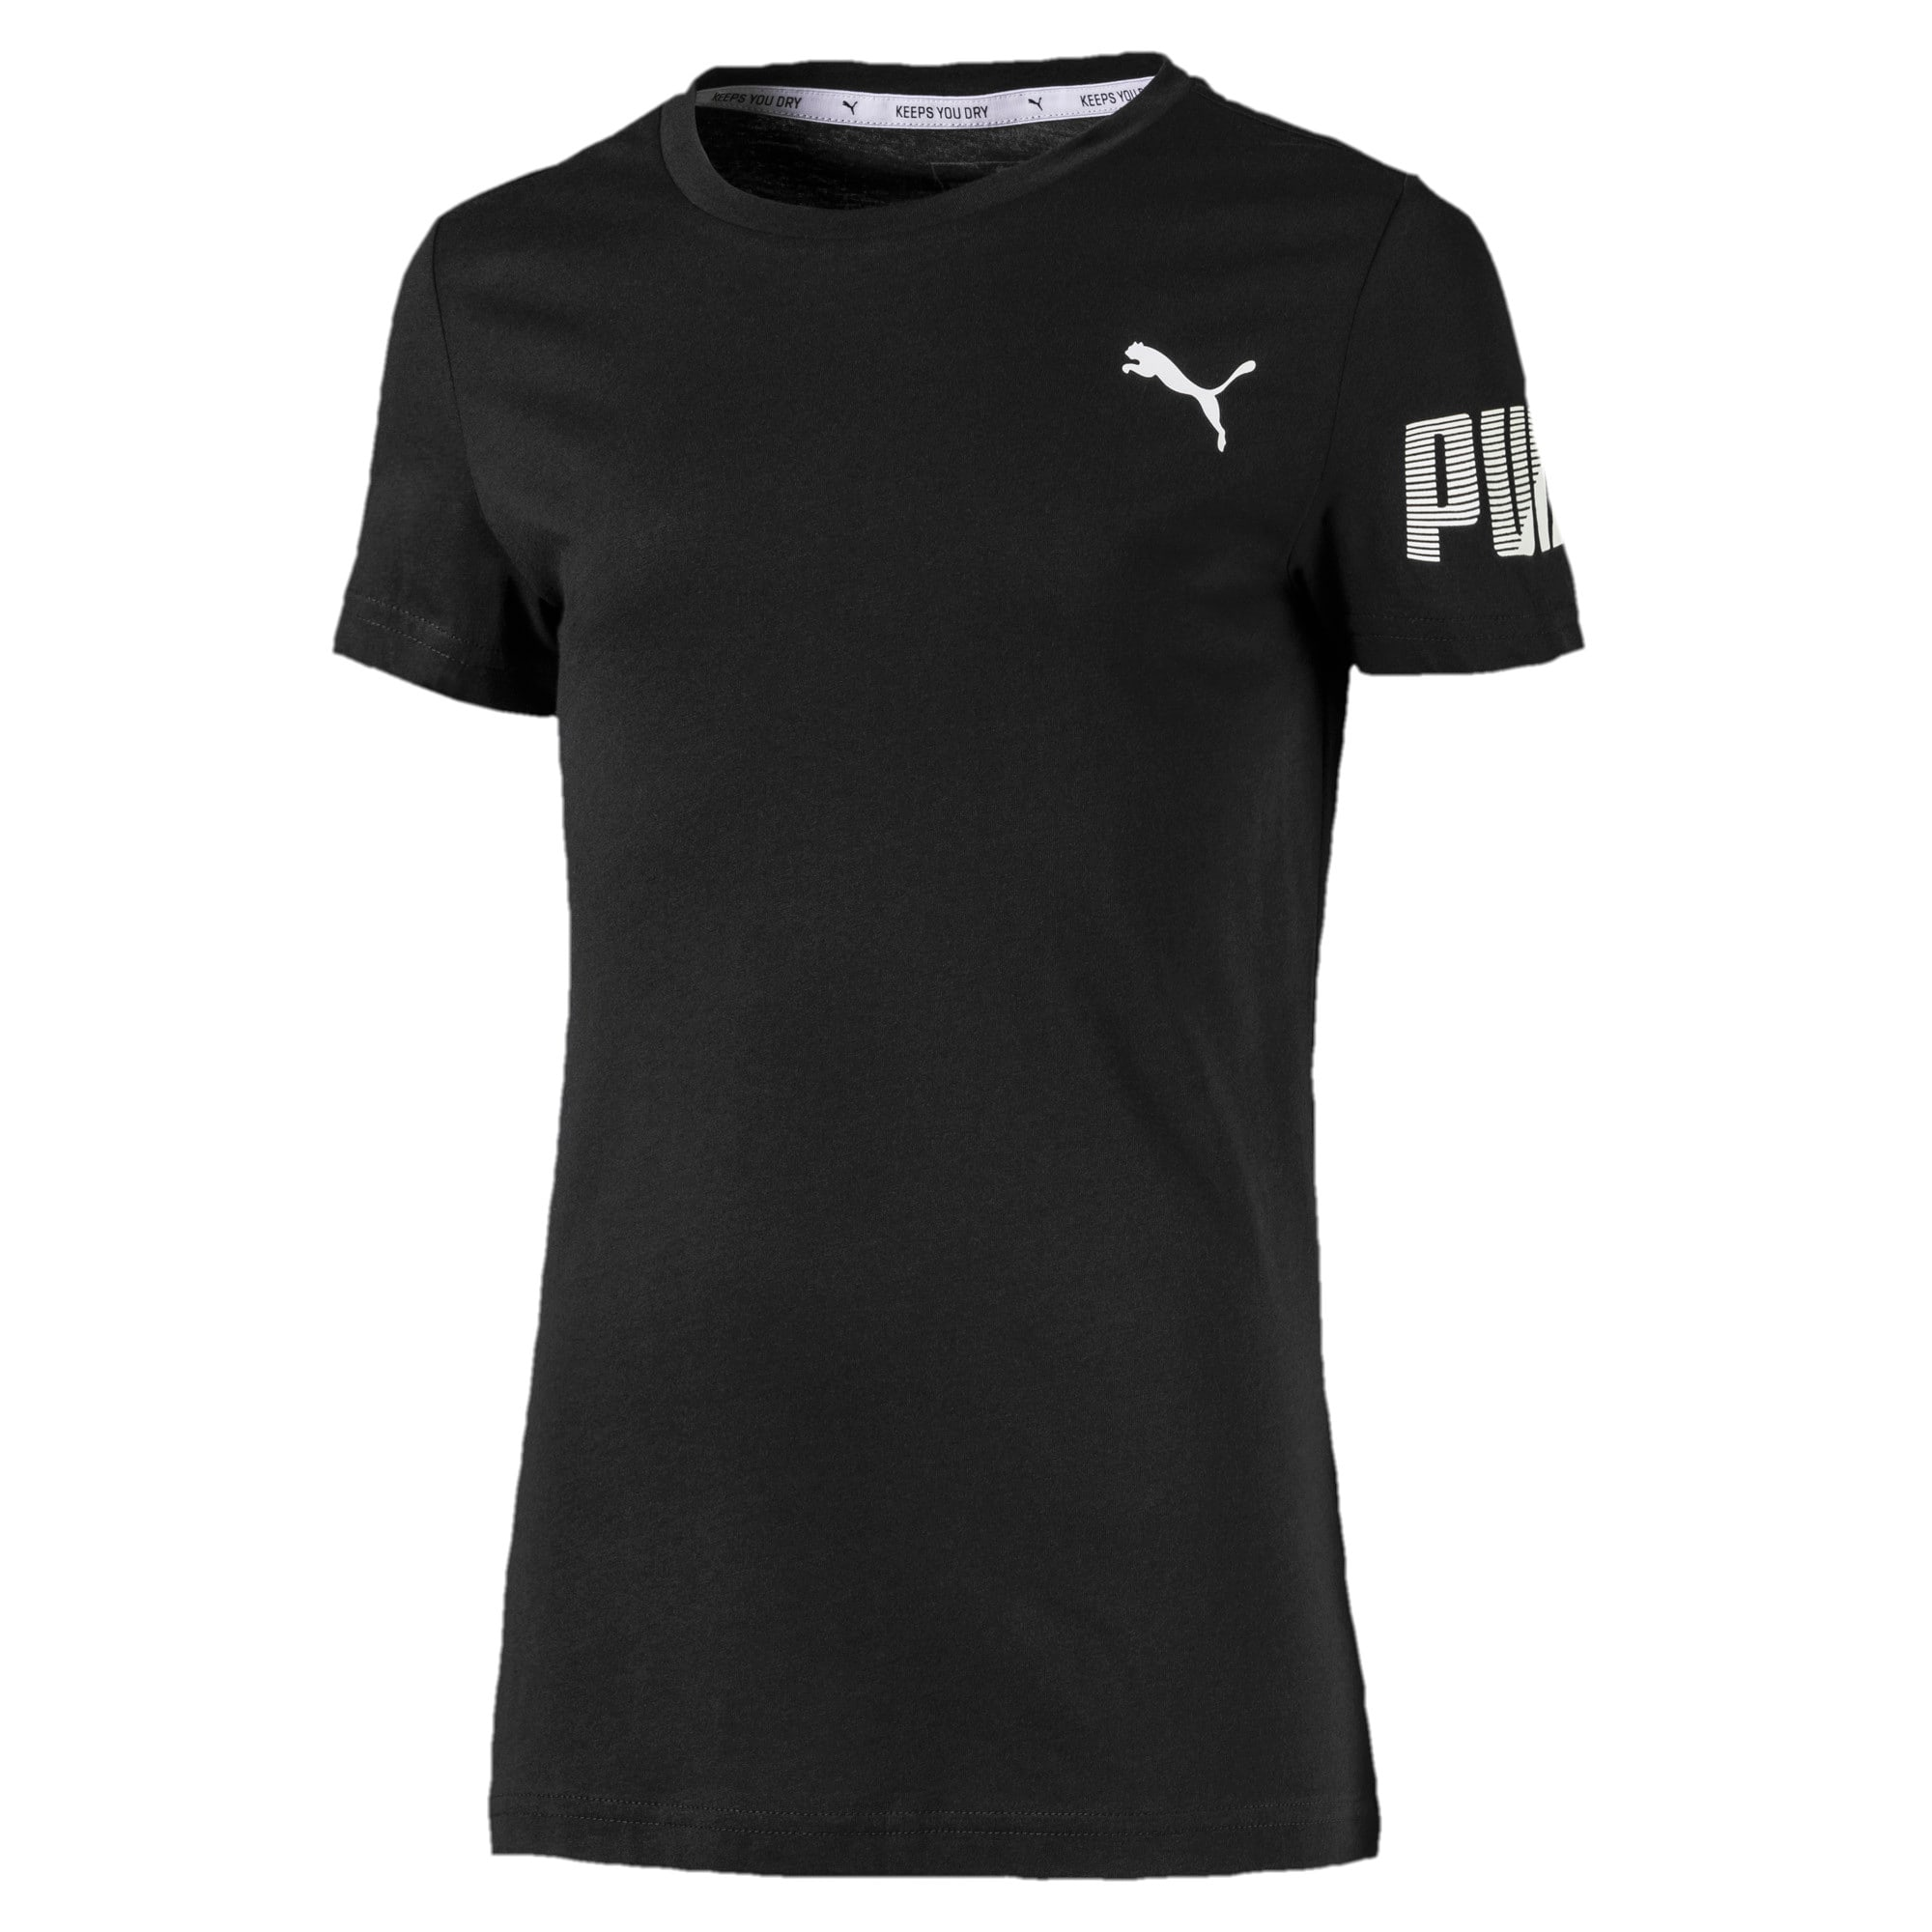 Thumbnail 1 of Modern Sports Mädchen T-Shirt, Puma Black, medium